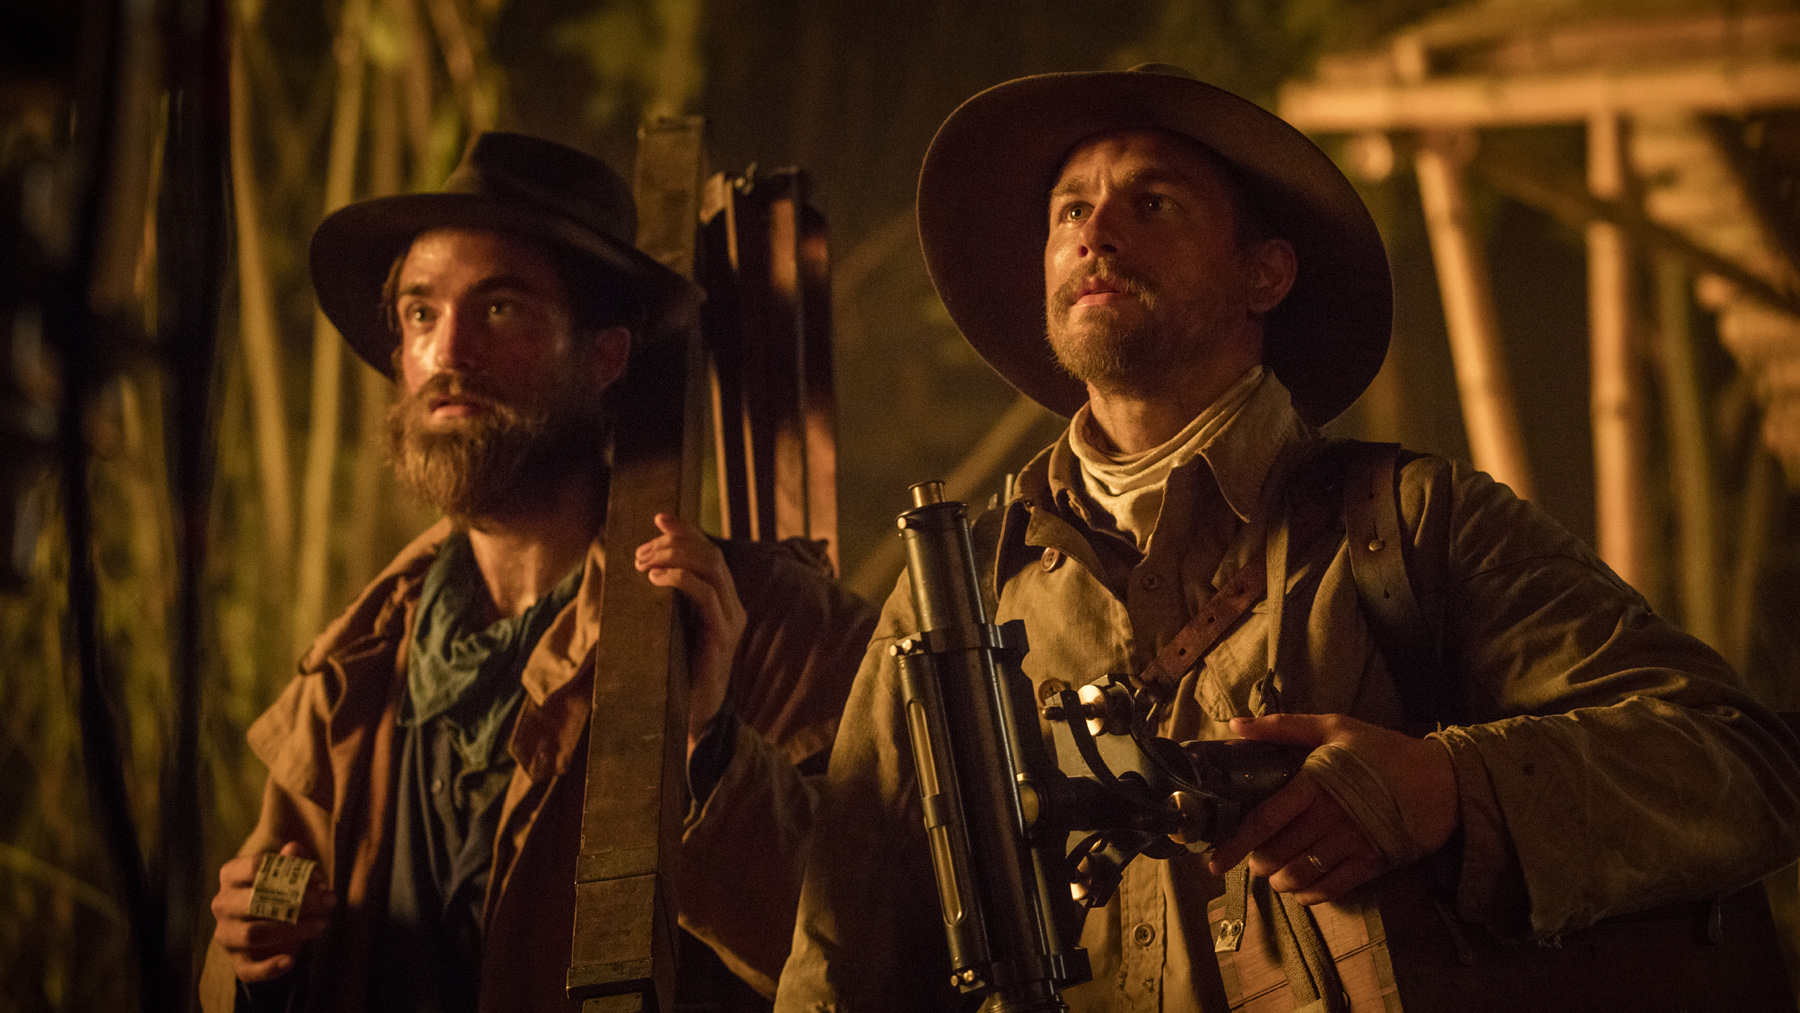 EXCLUSIVE: 'Lost City of Z' Director James Gray Talks Classic Filmmaking, Influences and Making a Modern Epic